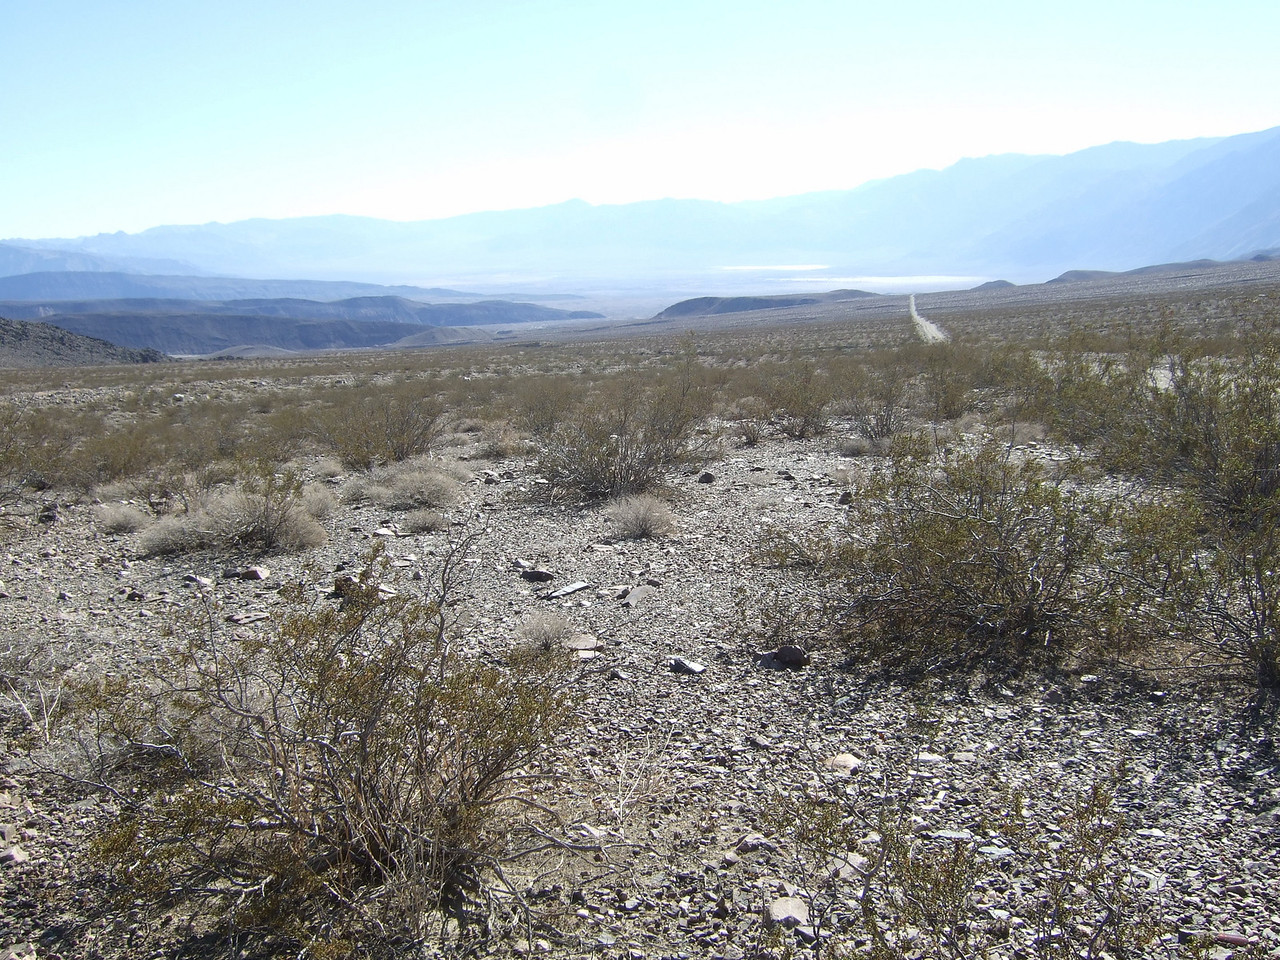 This is miles and hours from Saline Valley as seen from the middle of nowhere.